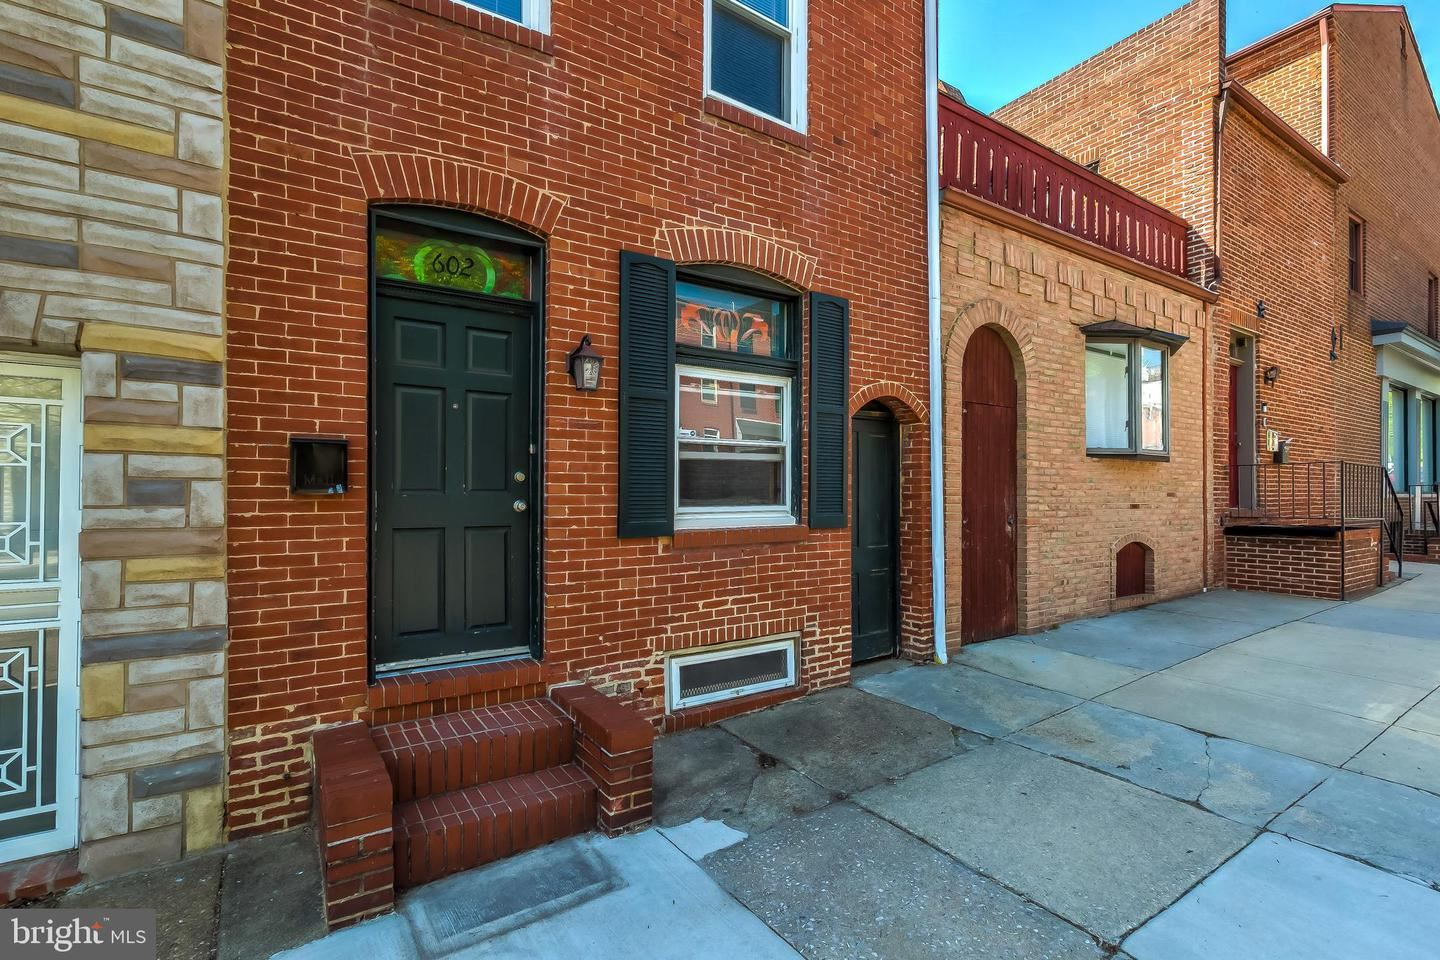 602 S PATTERSON PARK AVE, Baltimore, MD 21231 - MLS#: MDBA549108